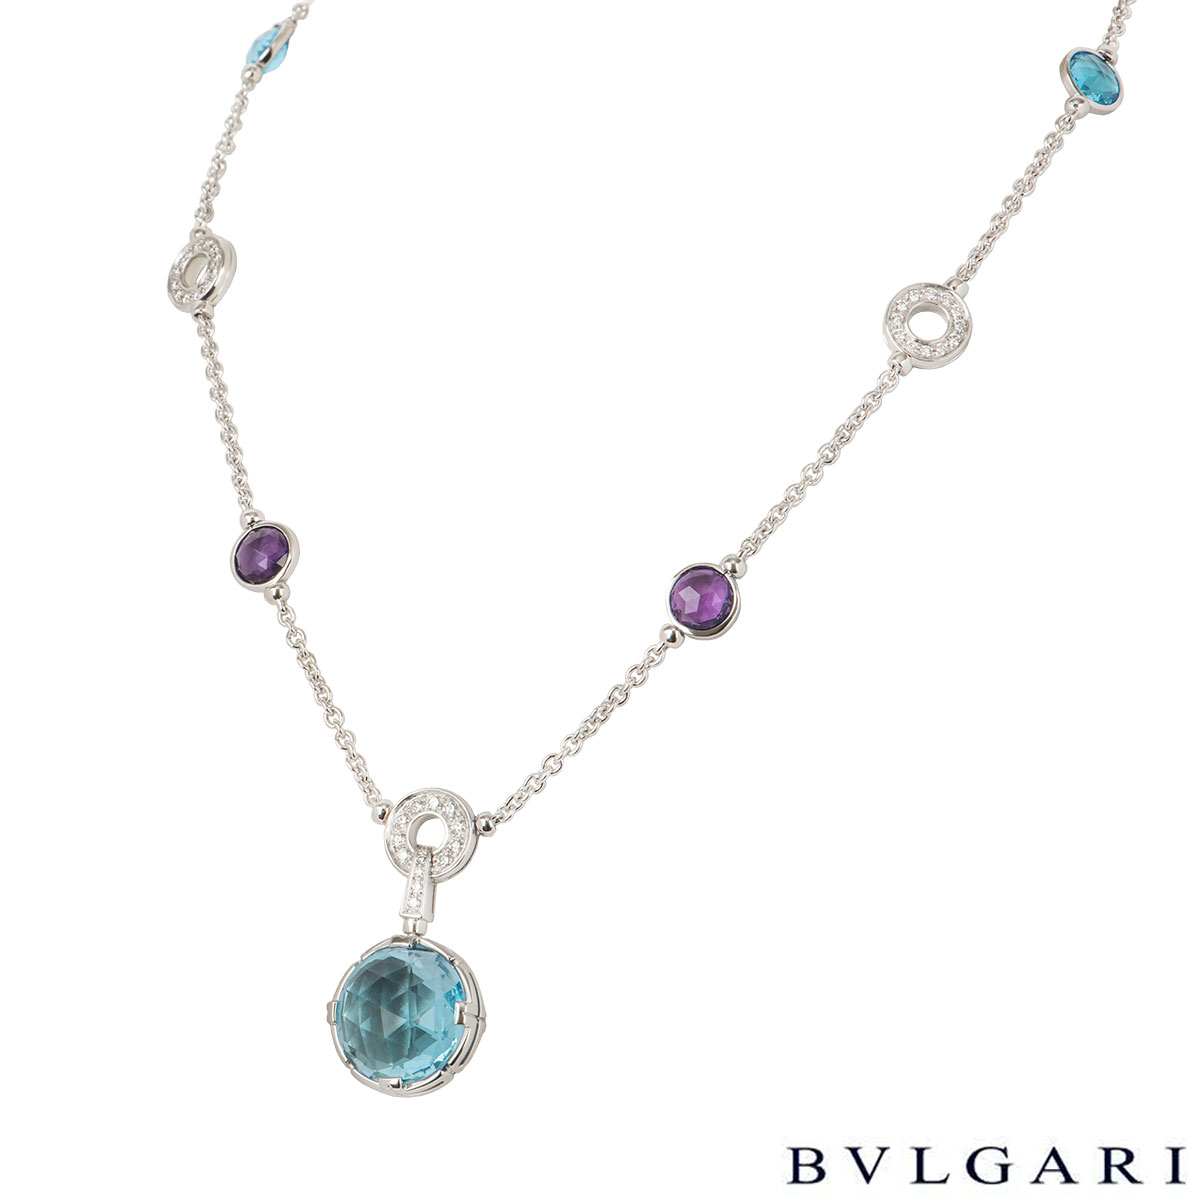 Bvlgari Parentesi White Gold Diamond And Multi-Gem Necklace